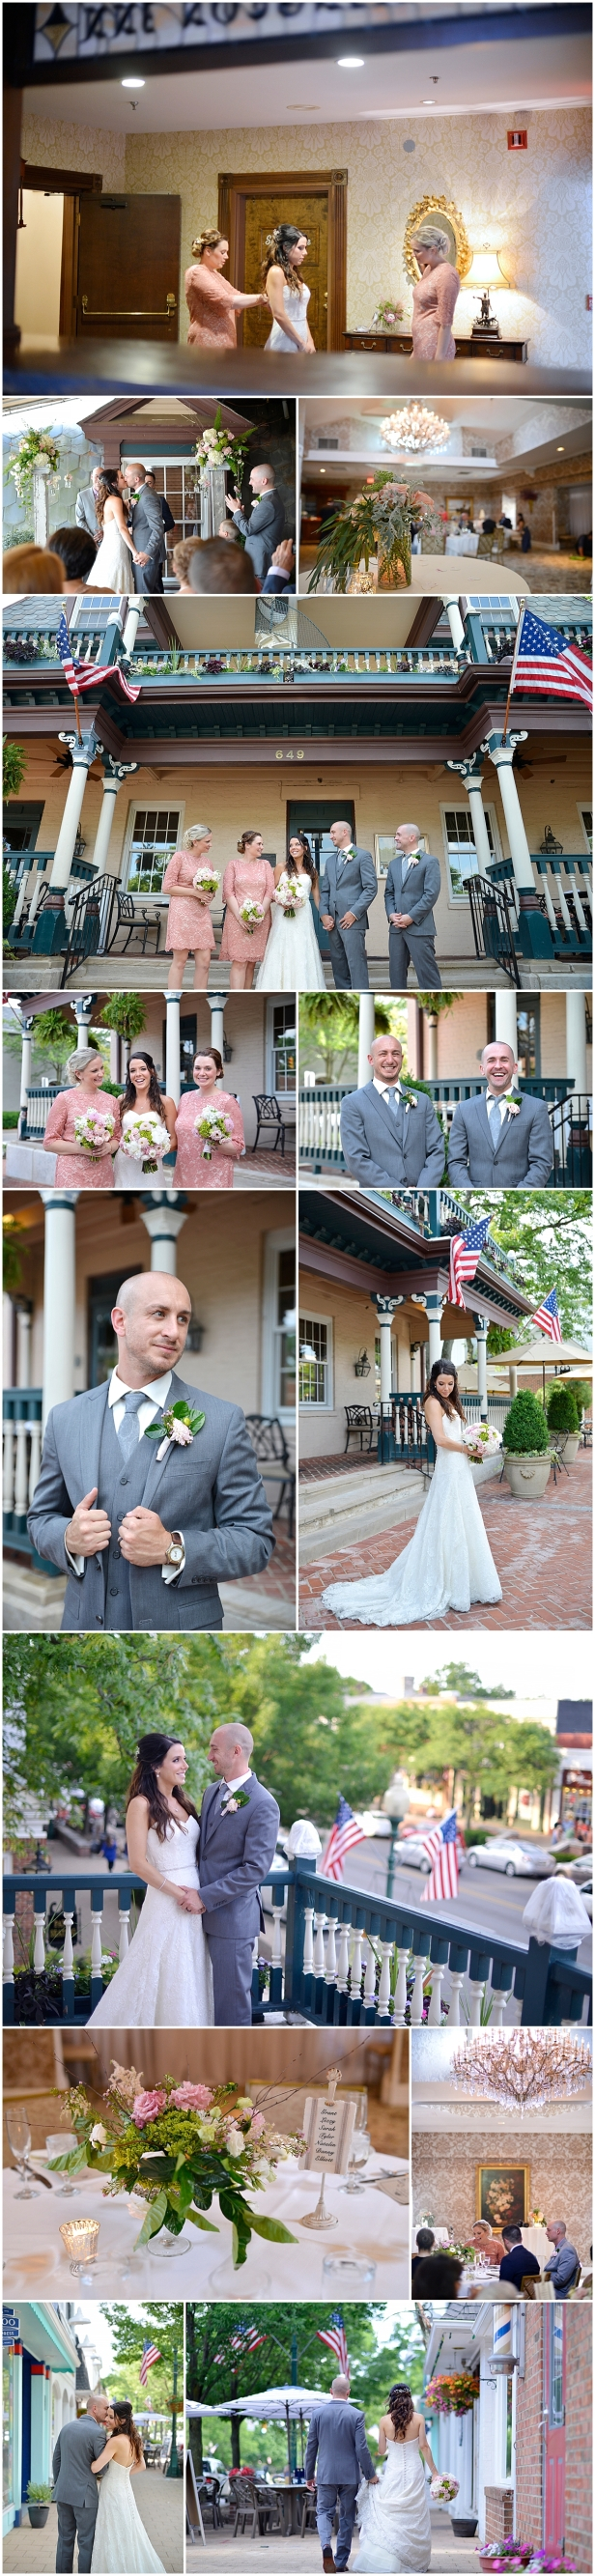 the-worthington-inn-wedding-columbus-ohio